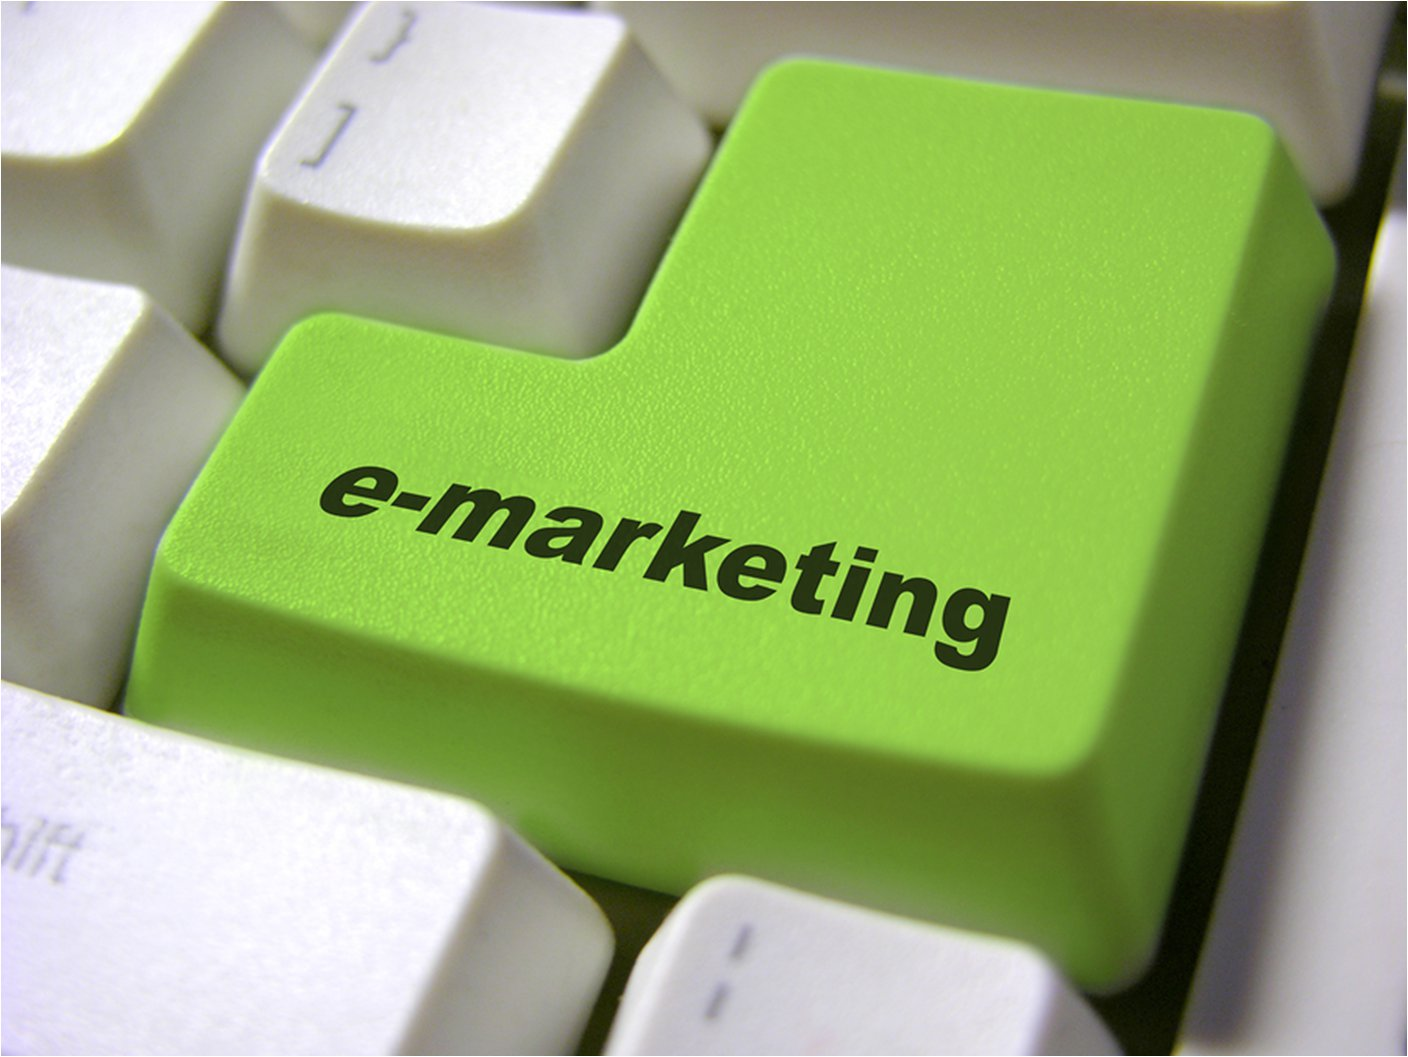 Invertir en marketing online